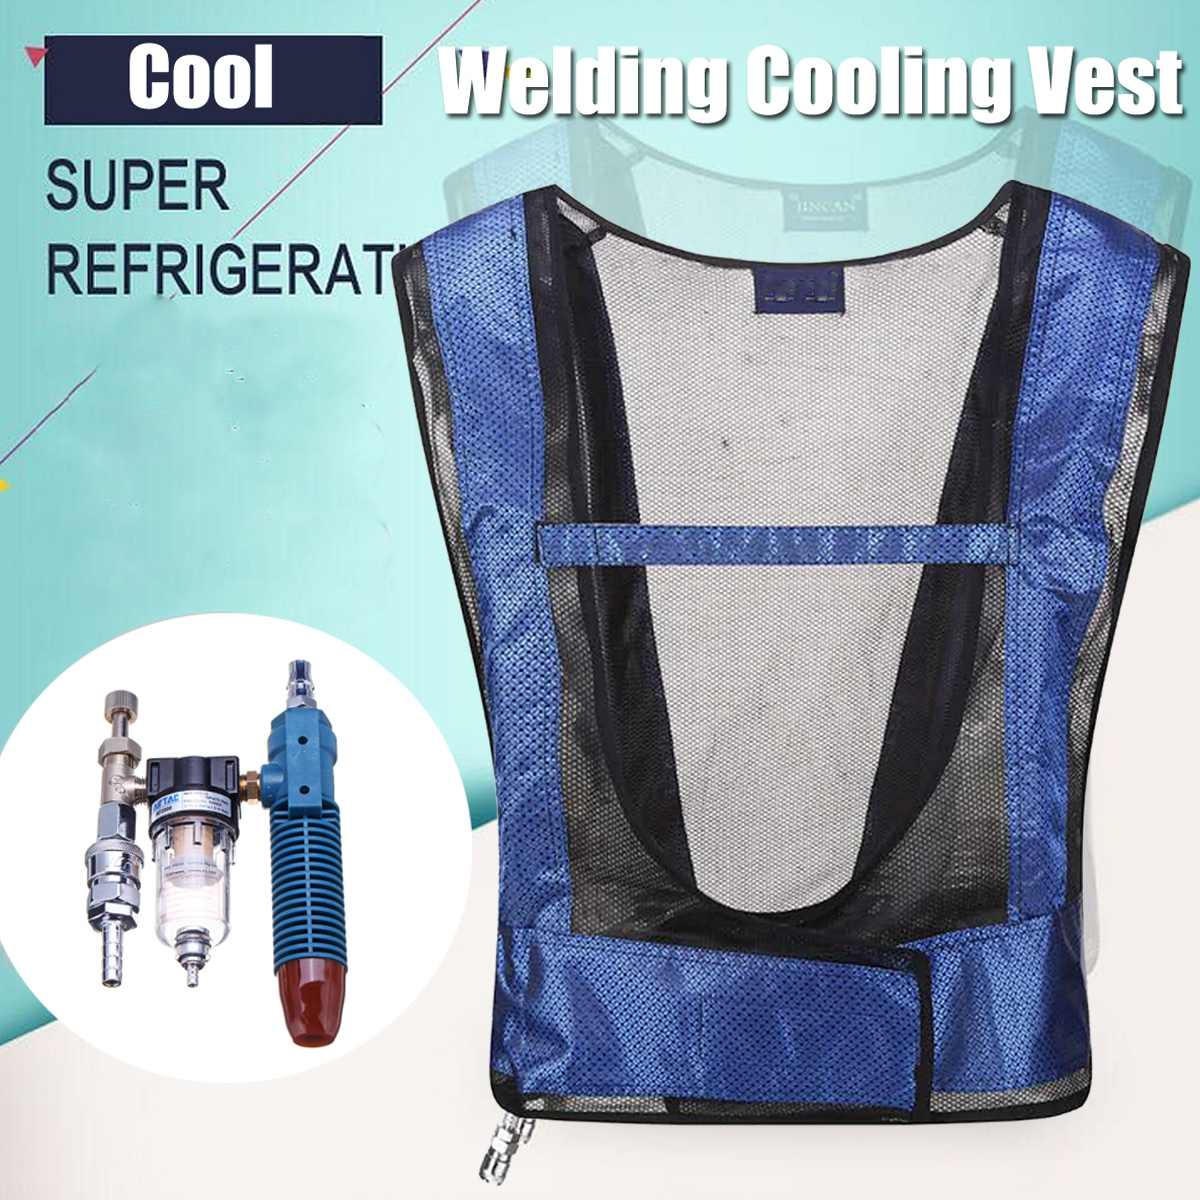 Safurance Portable Welding Cooling Vest Clothing MIG TIG Welding Clothes Cool Clothes Air Conditioning Cooling Vest